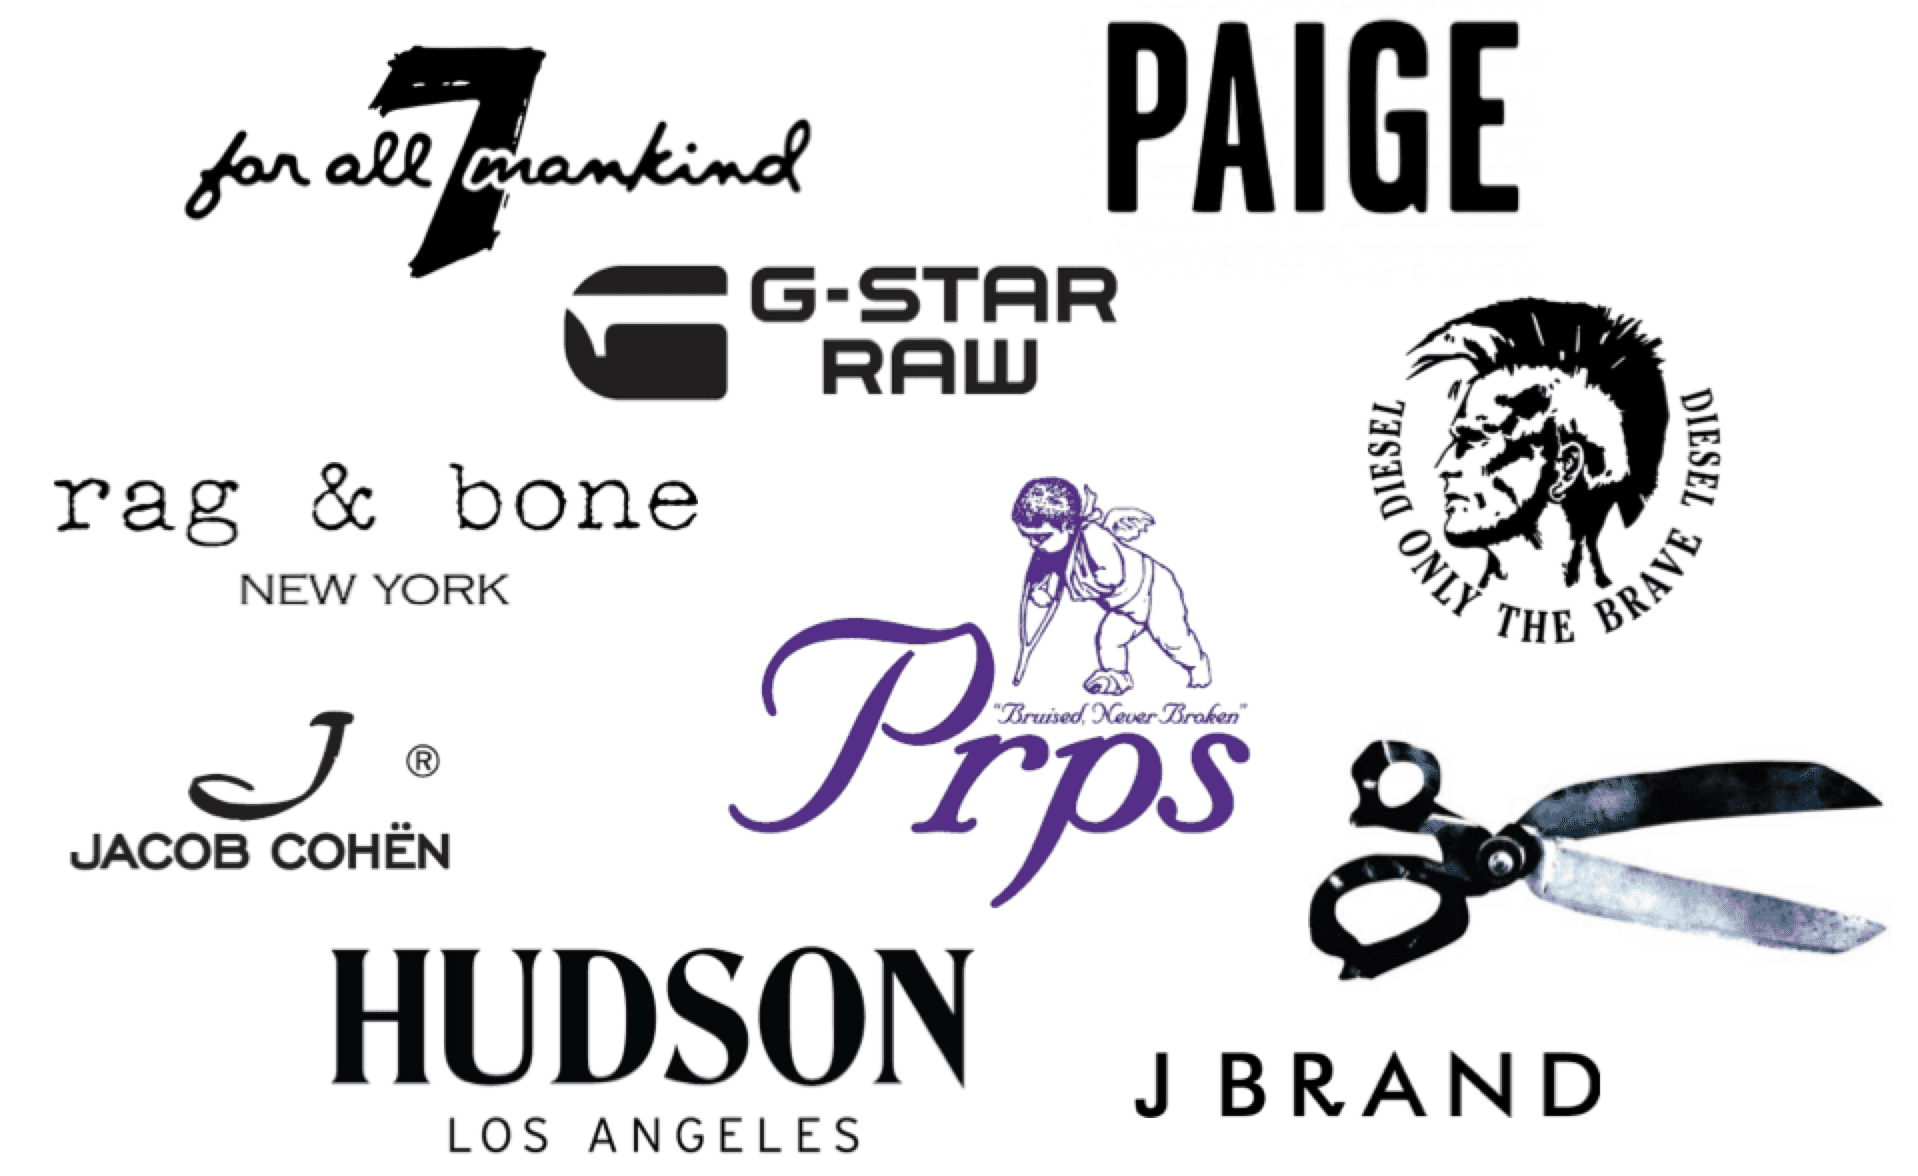 Premium jeans brands - 7 For All Mankind, Paige, G-Star Raw, Jacob Cohen, Rag & Bone, PRPS, Diesel, J Brand, Denham, Hudson